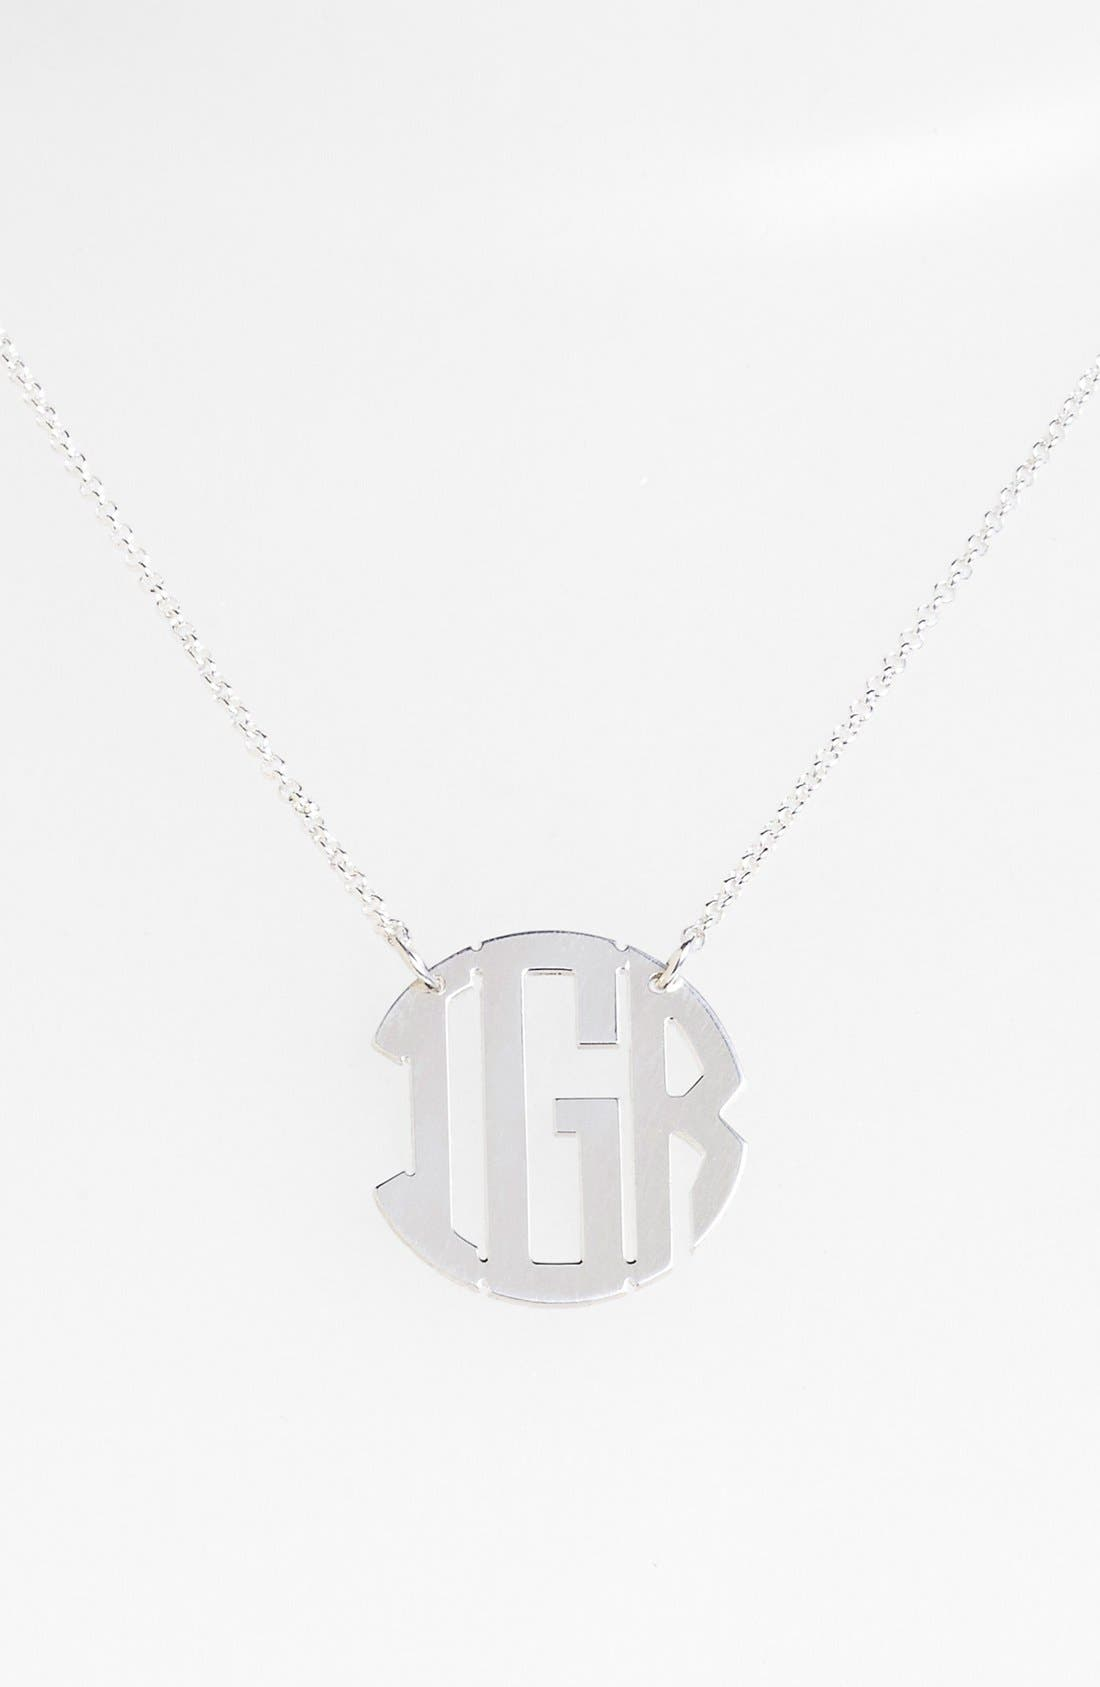 Alternate Image 1 Selected - Argento Vivo Personalized 3-Initial Block Monogram Necklace (Nordstrom Online Exclusive)